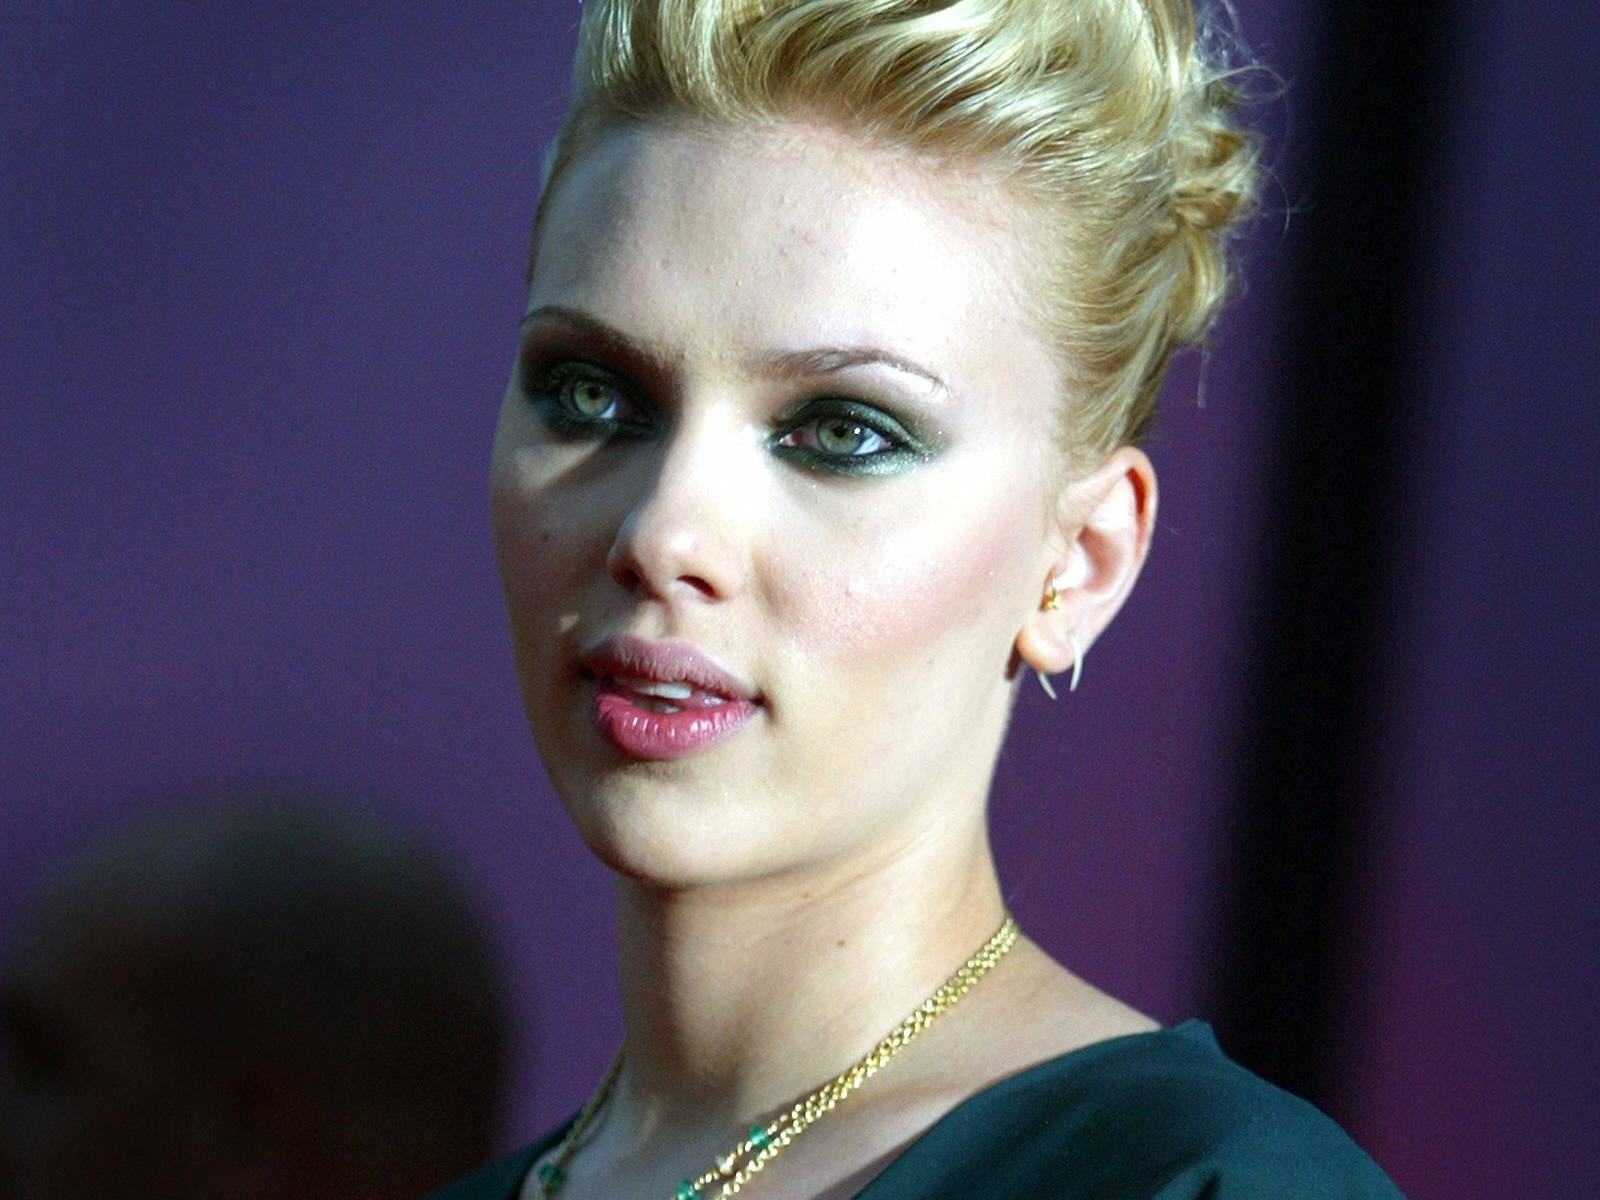 http://4.bp.blogspot.com/-4sIS5SctqLA/Tr0of09Jr3I/AAAAAAAAI9I/GPQGmQ6E_L4/s1600/Scarlett_Johansson_Wallpapers_hot_lips.jpg